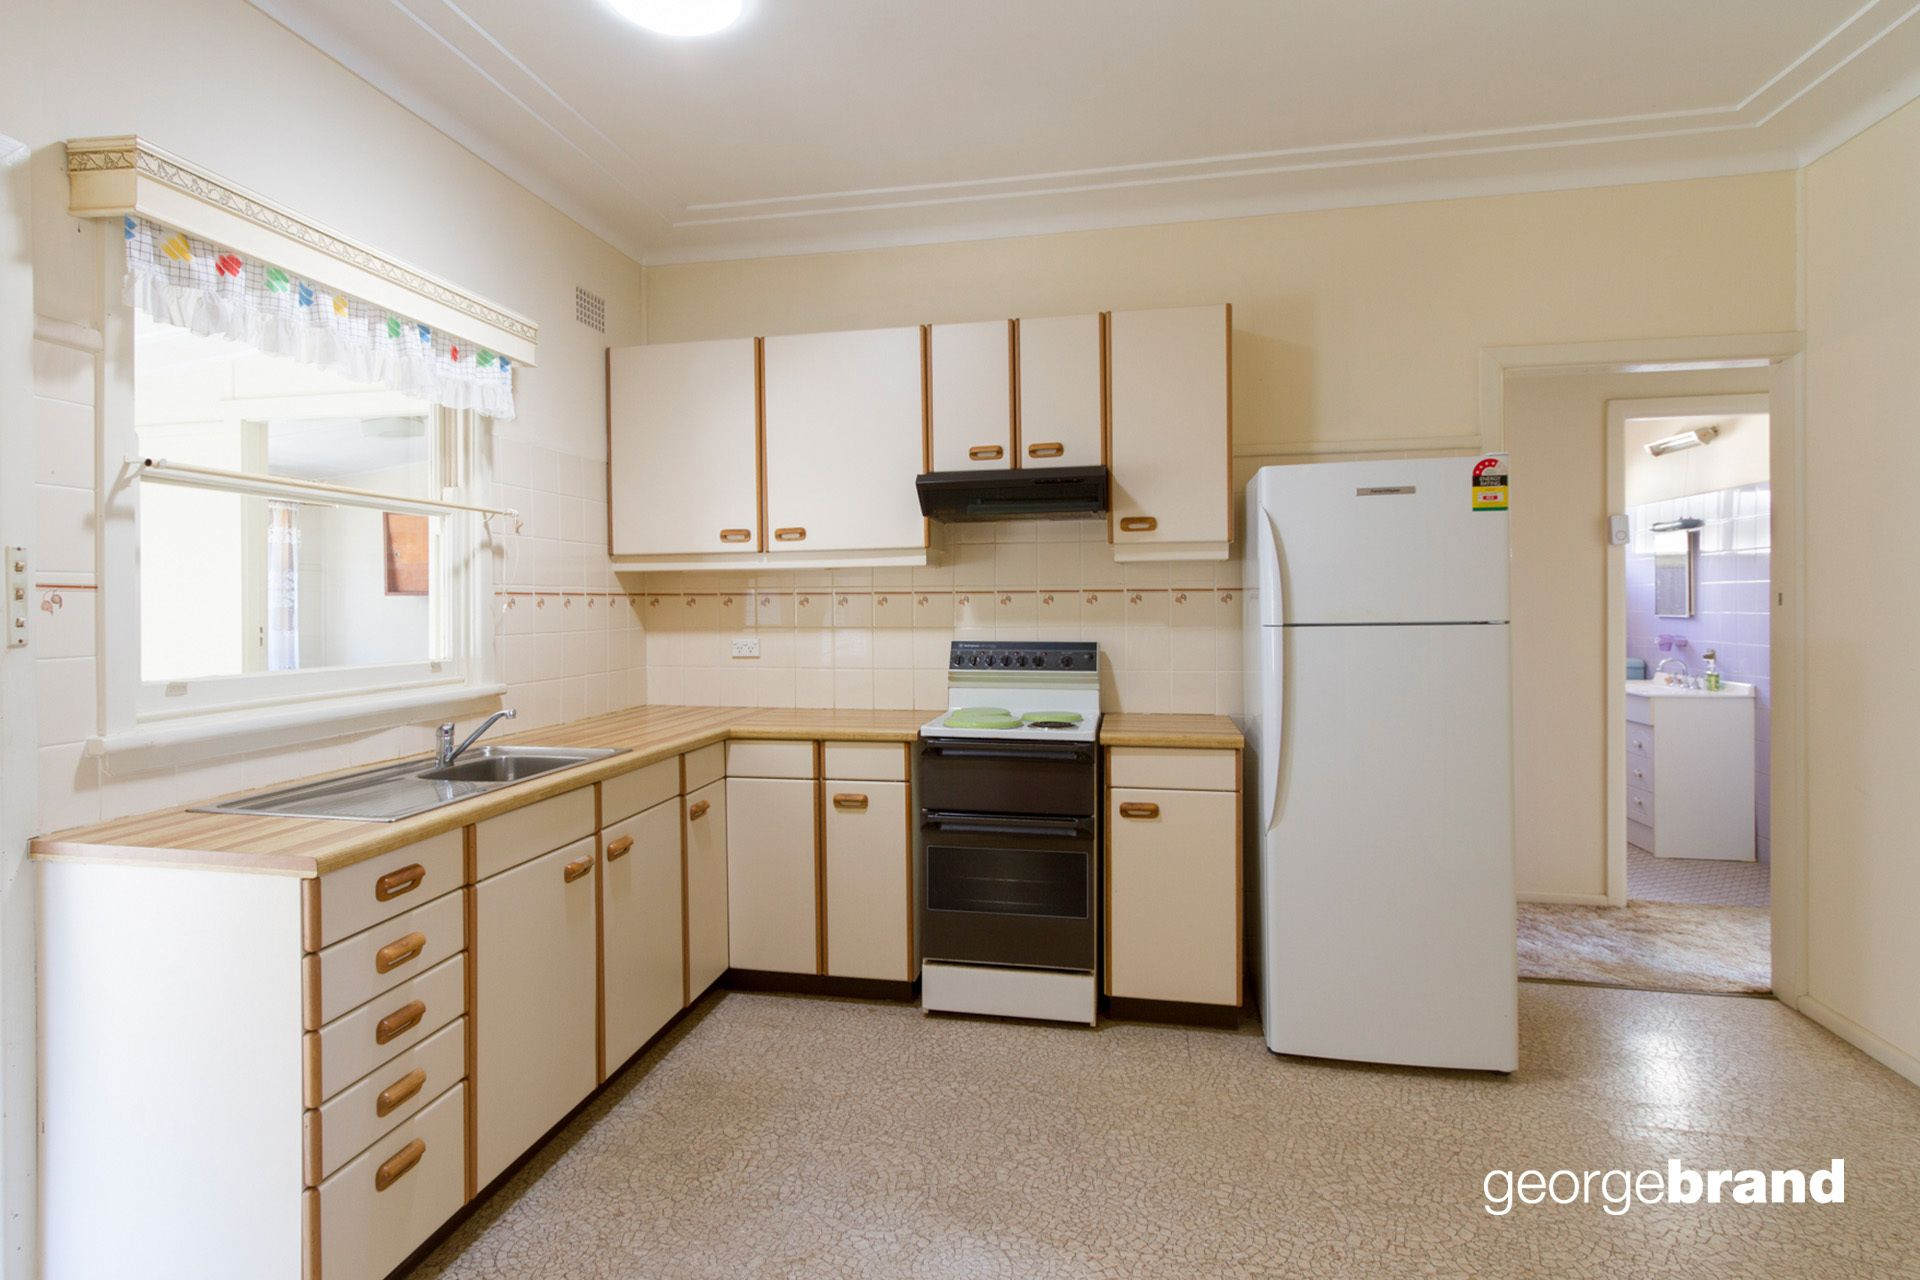 Umina Beach Real Estate: SOLID BRICK HOME WITH POTENTIAL